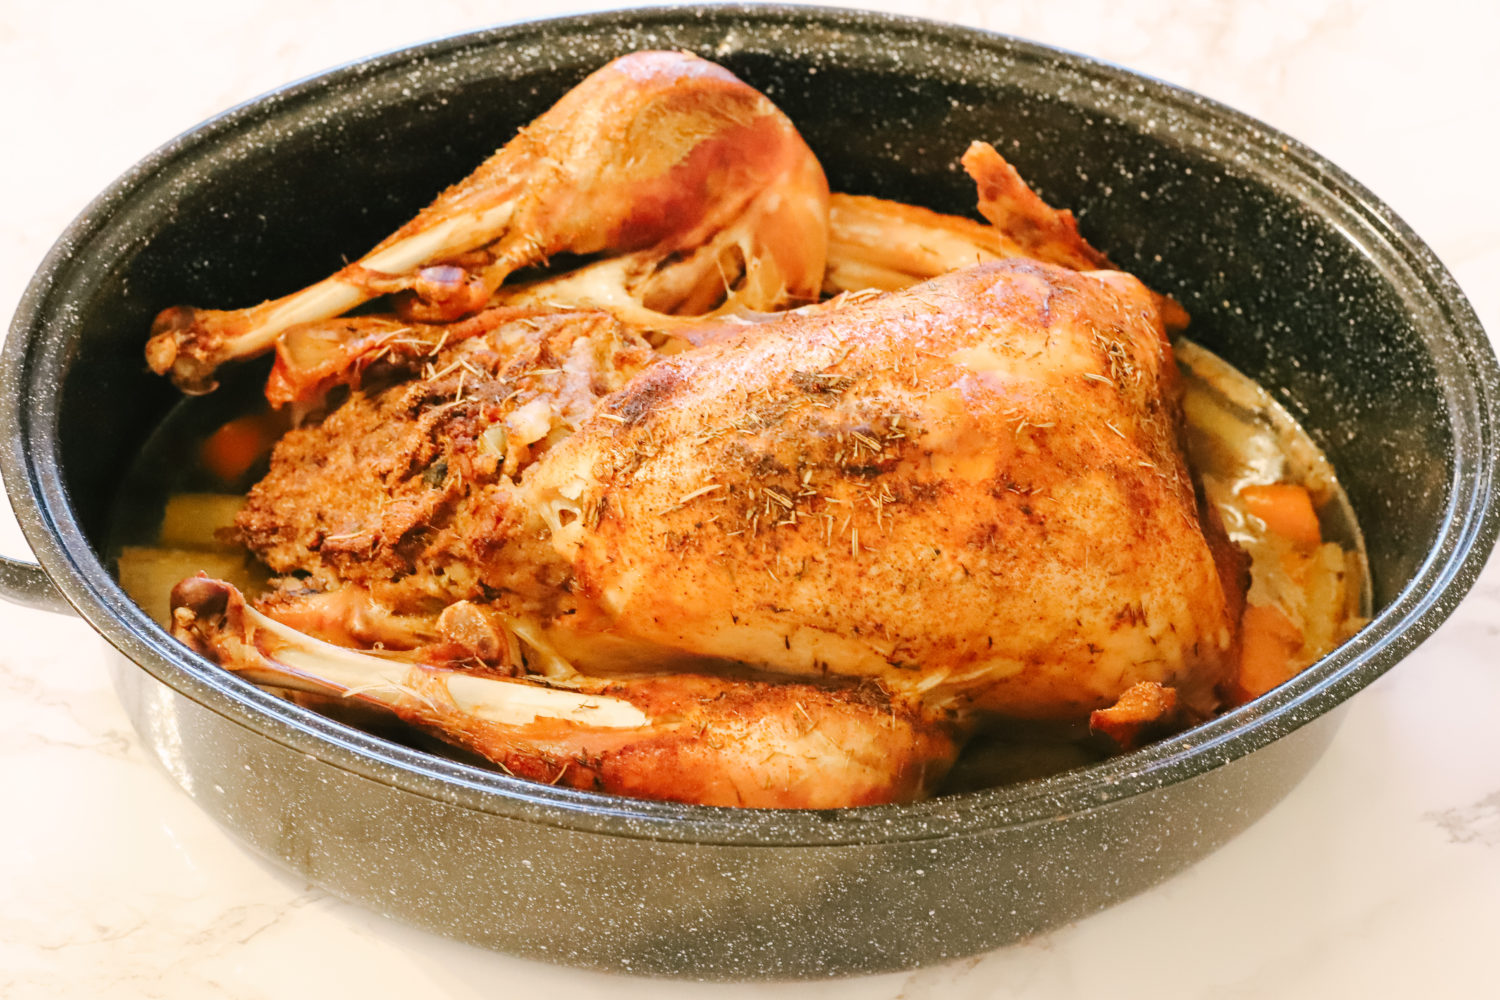 The perfect Thanksgiving dinner made with a whole turkey cooked to juicy goodness and low carb stuffing! Christmas | Thanksgiving | Gluten-free | Holiday Recipes | Keto | Low Carb | Atkins | Oven Baked | Roasted | Cooked Turkey | Whole Turkey | Turkey Dinner | Stuffed Turkey | Keto Stuffing | Holiday Dinner | Homemade | Easy |